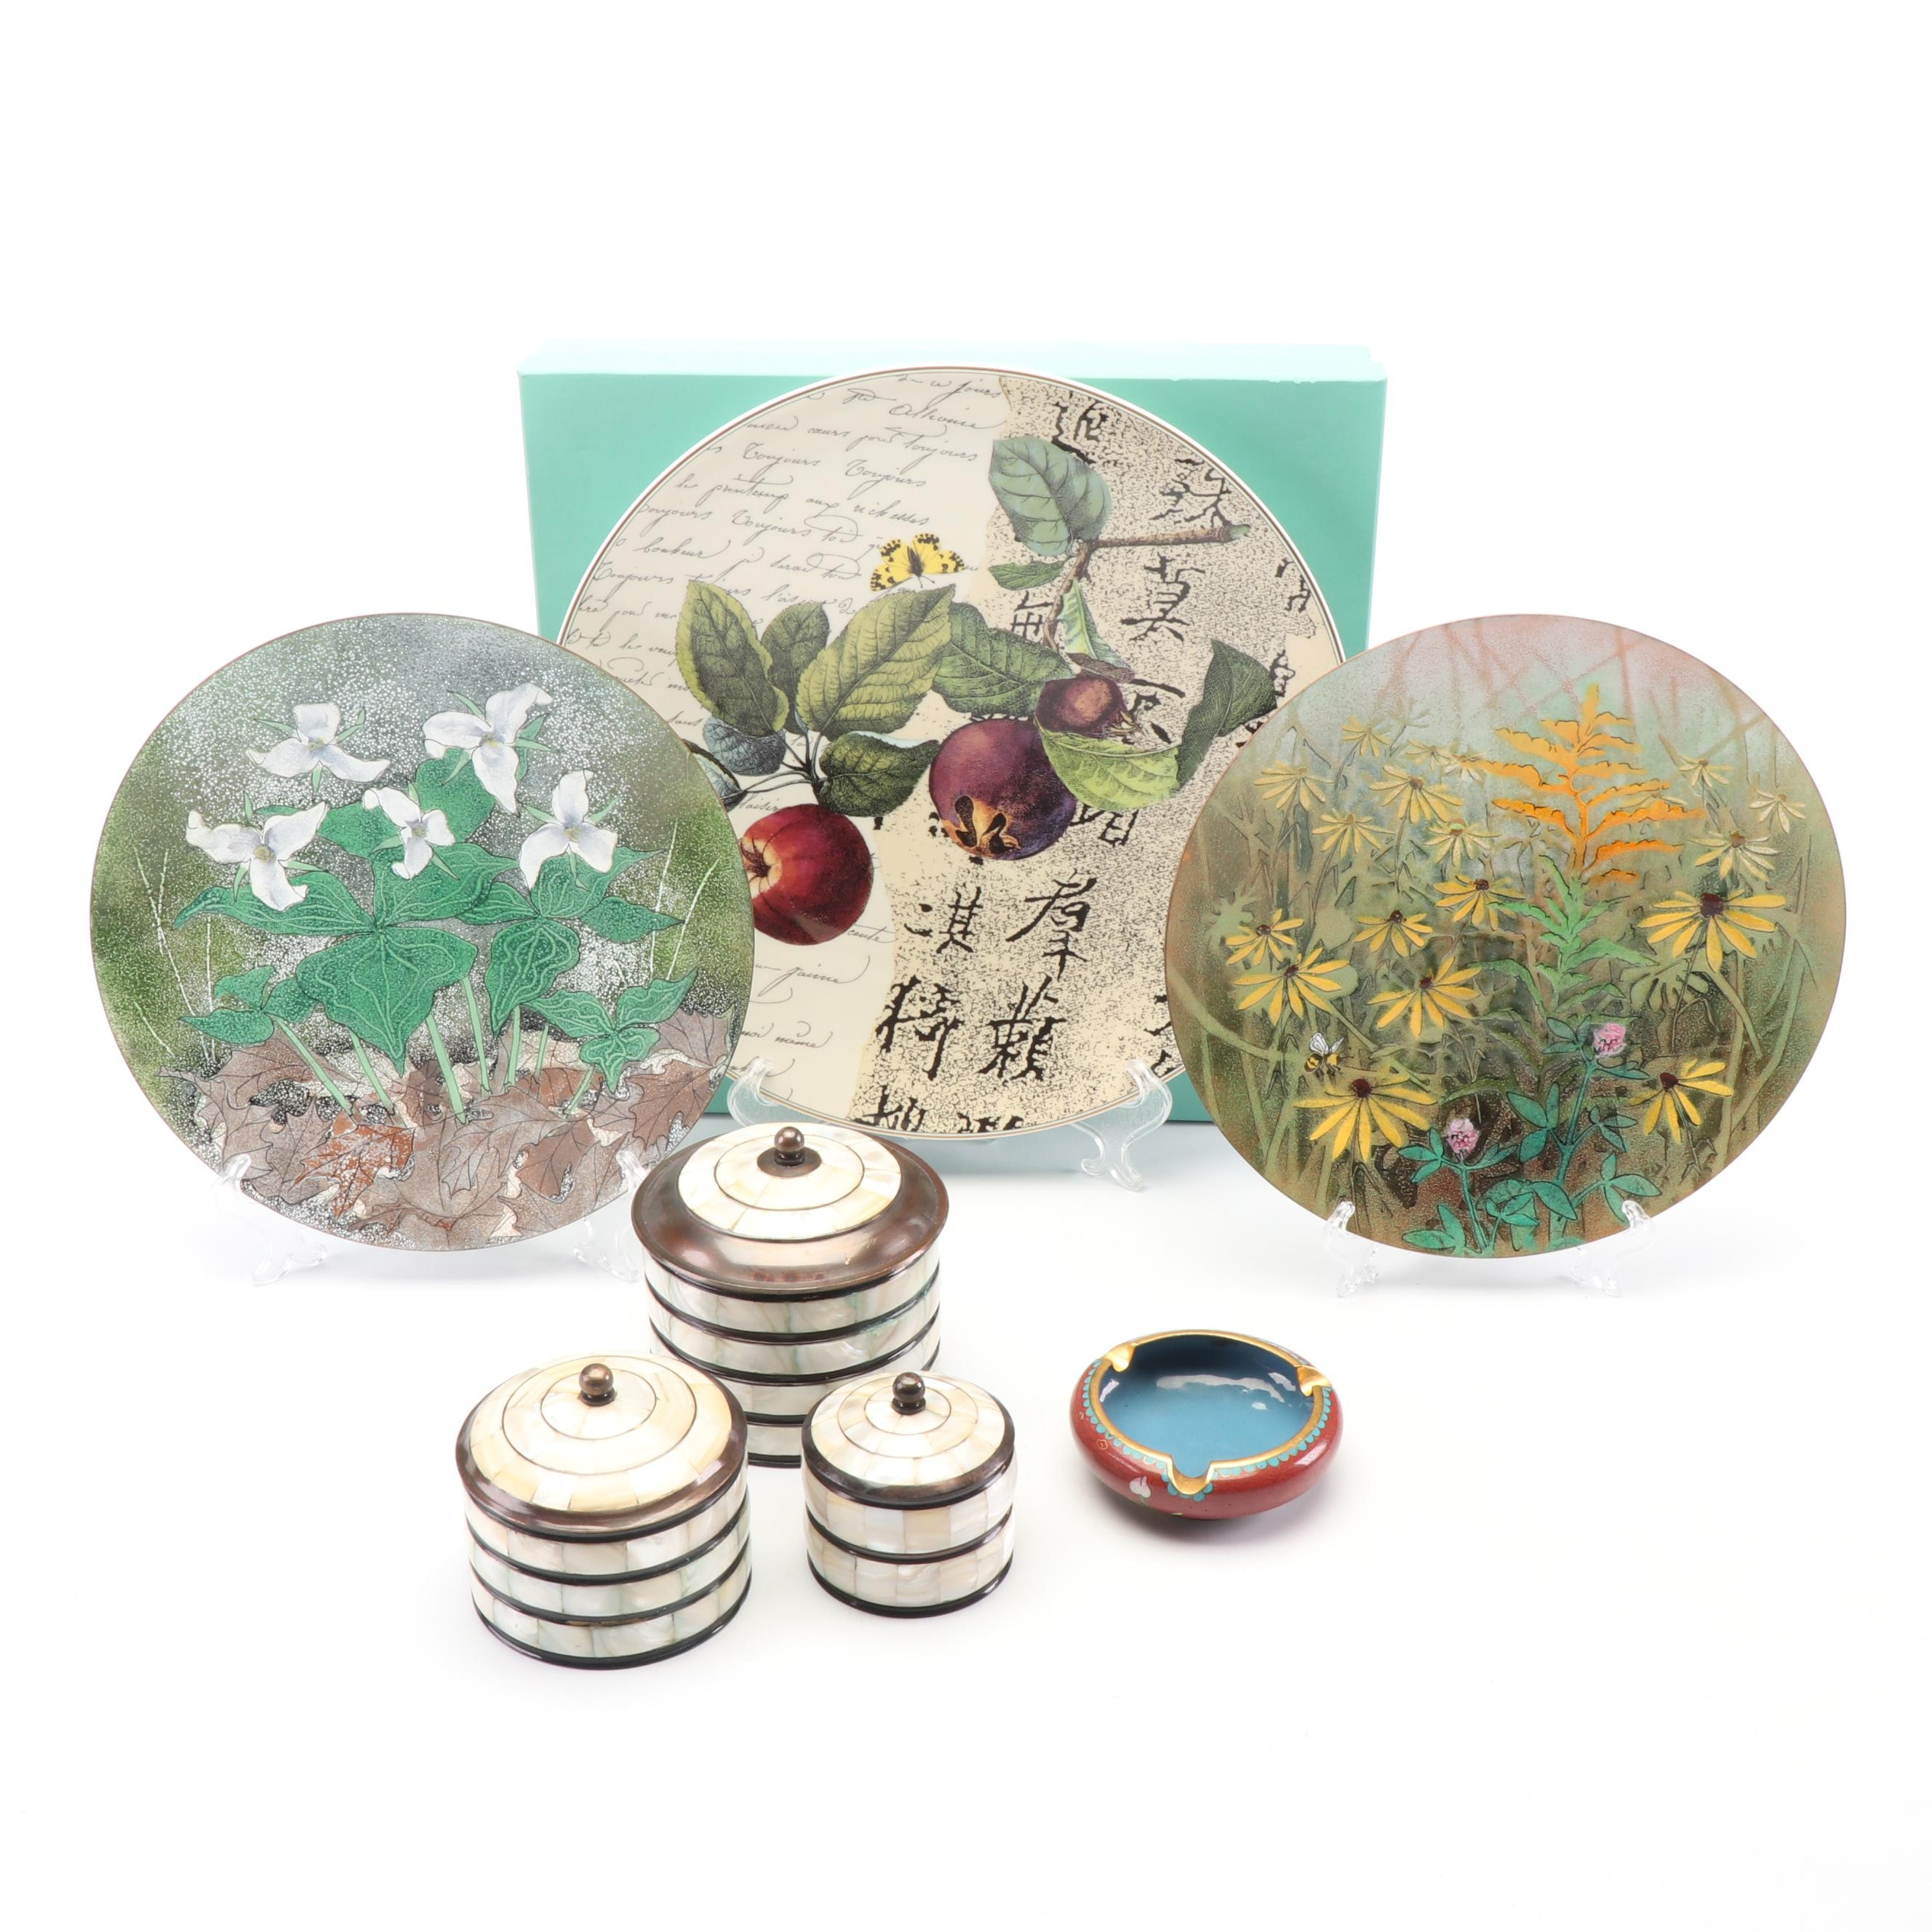 Bernardaud Limoges Plate, Cloisonné Ash Receiver and Mother of Pearl Canisters